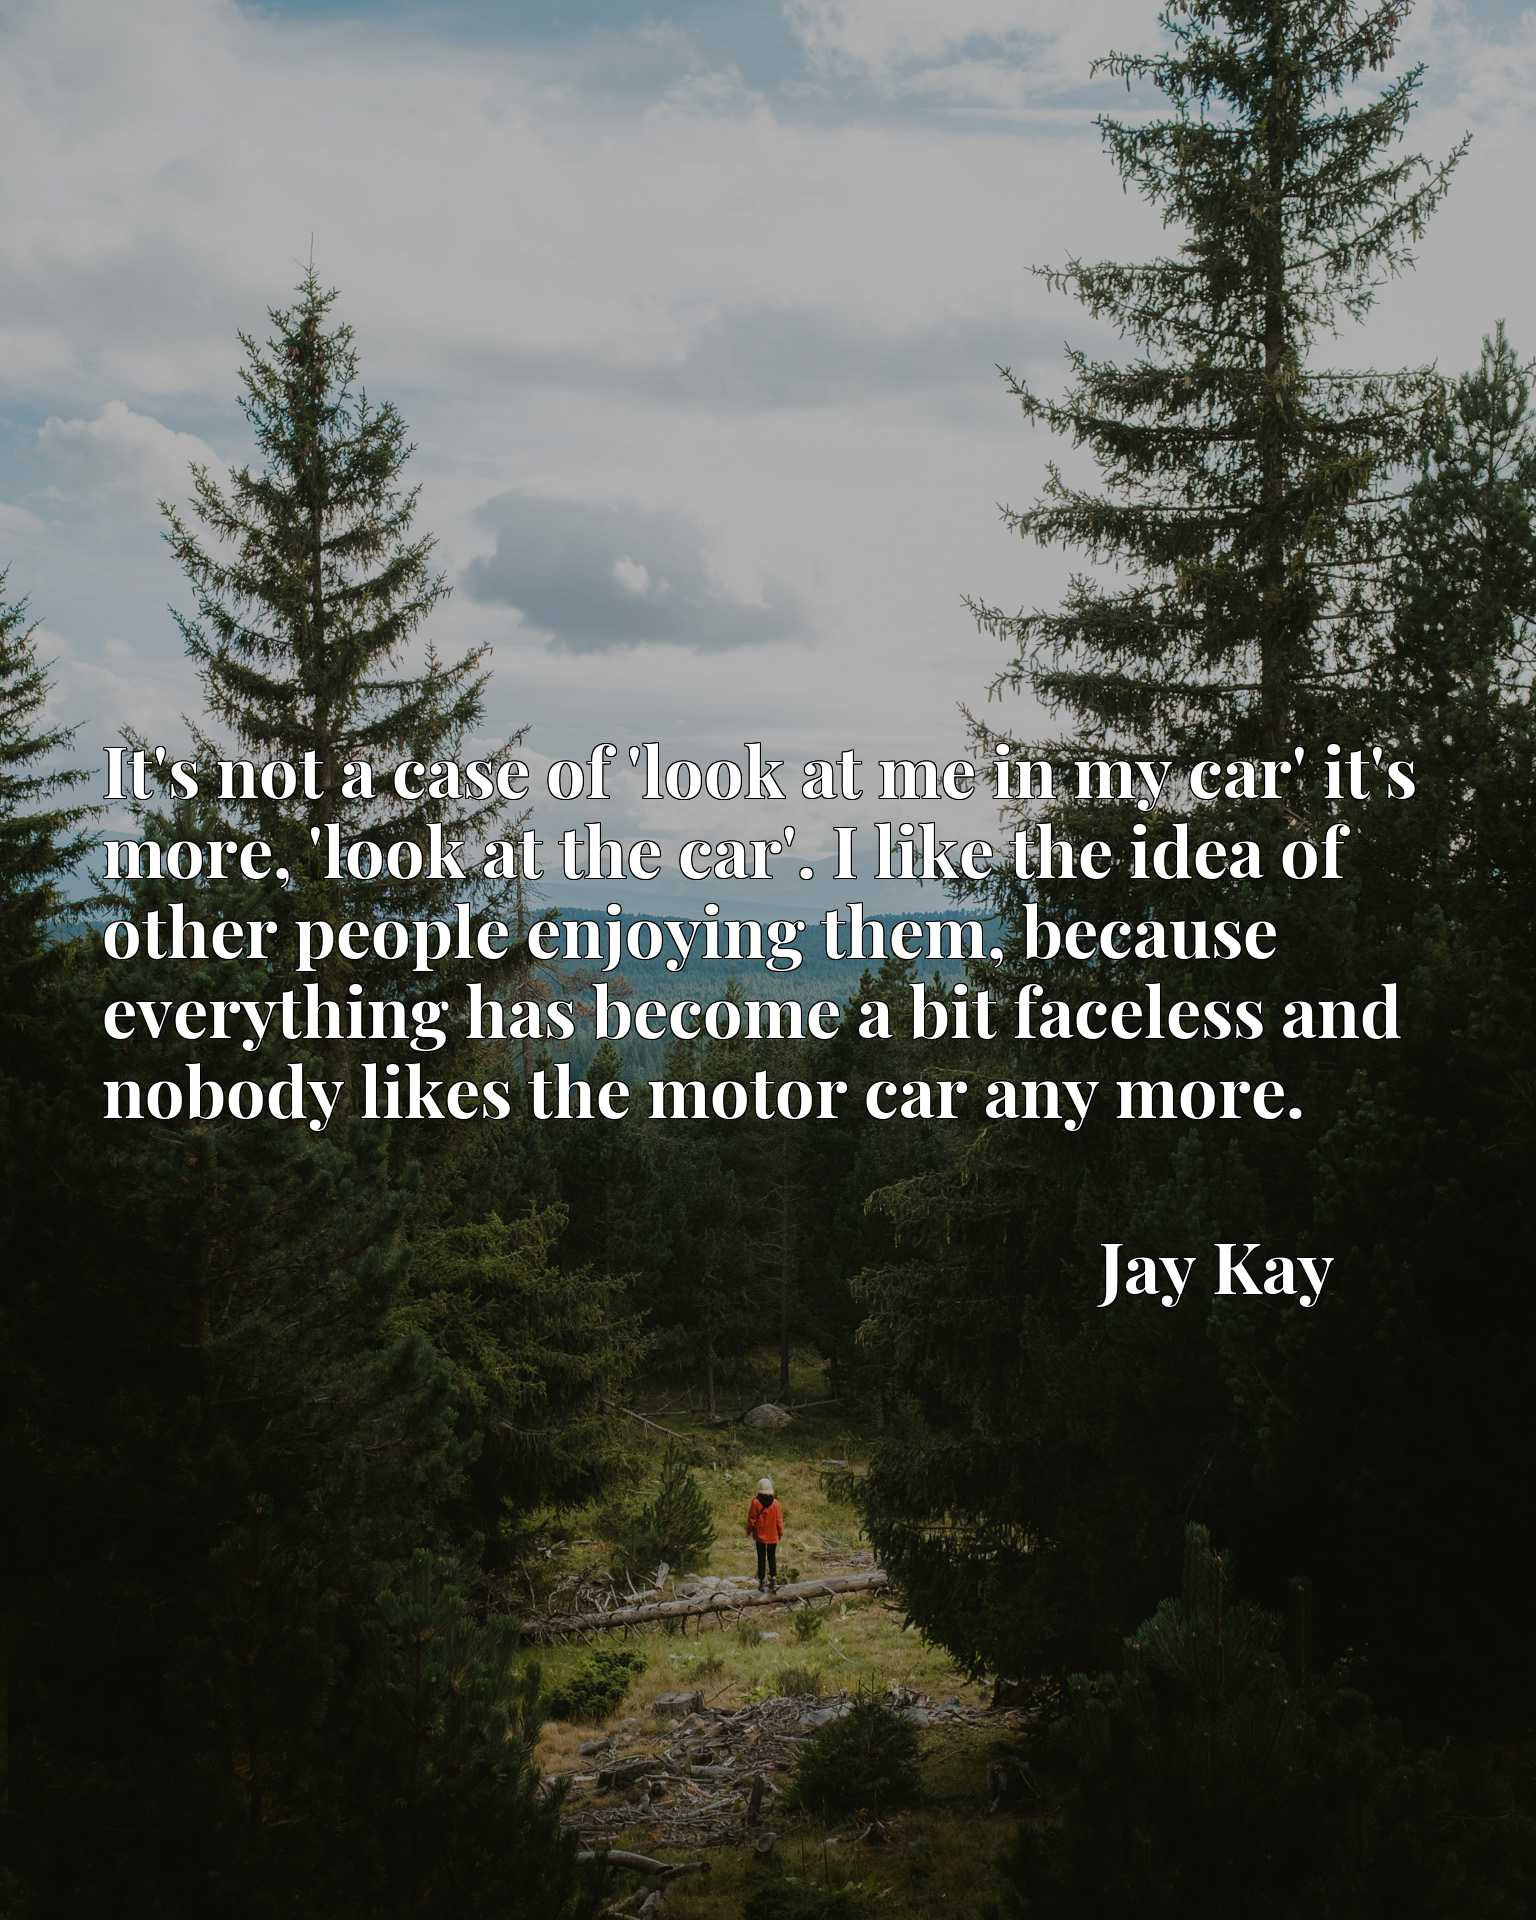 It's not a case of 'look at me in my car' it's more, 'look at the car'. I like the idea of other people enjoying them, because everything has become a bit faceless and nobody likes the motor car any more.